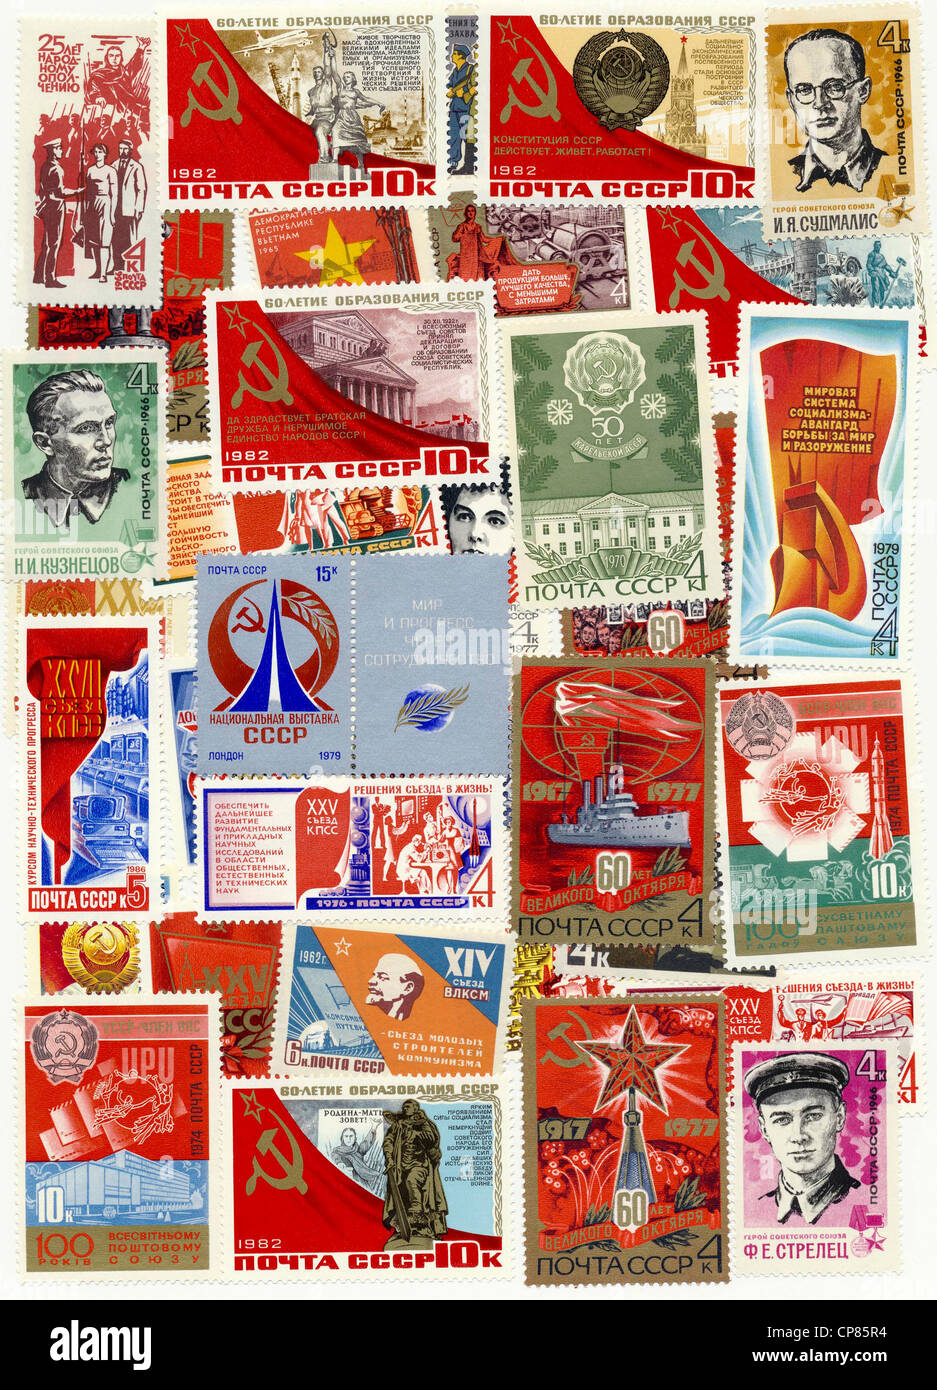 Historic postage stamps of the USSR, political motives, Historische Briefmarken der UdSSR, politische Motive - Stock Image